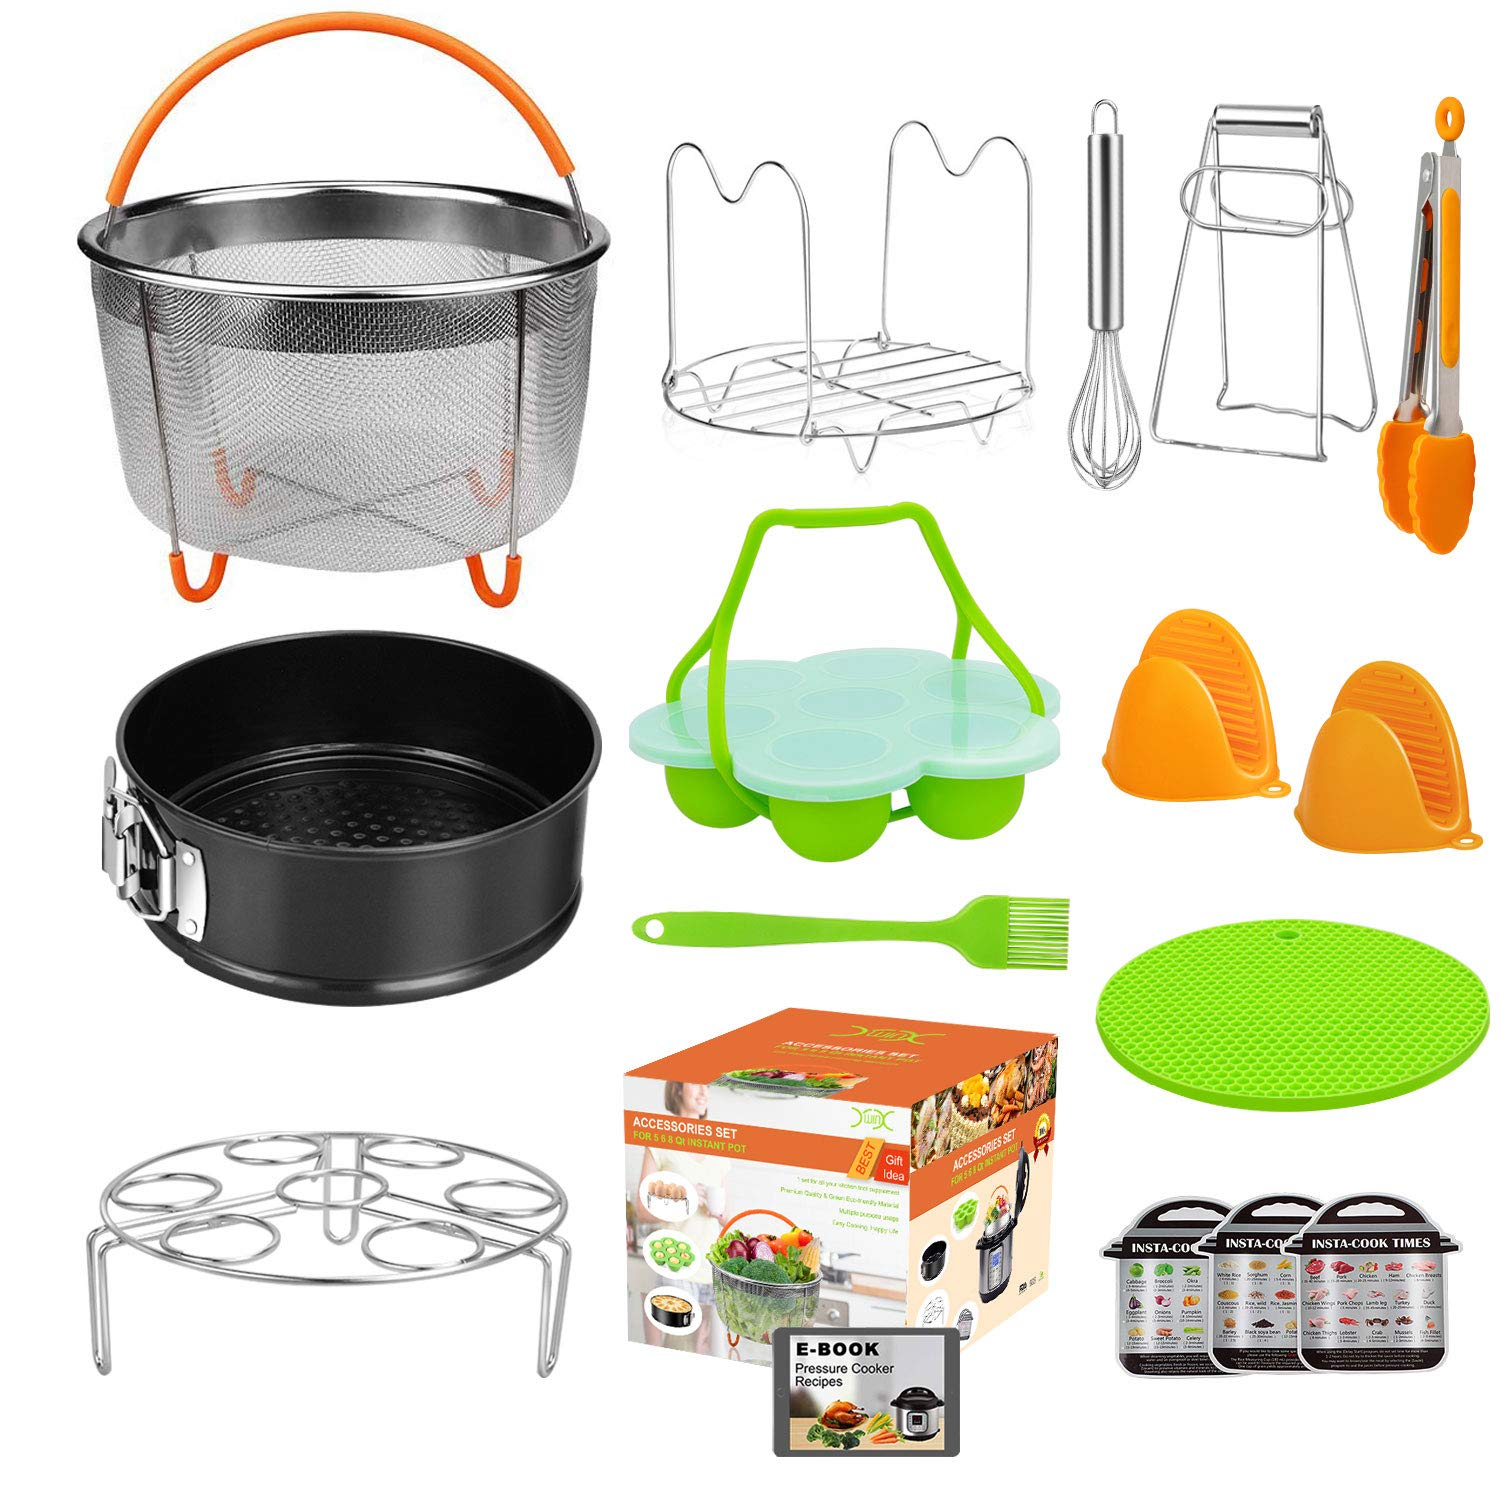 YXWIN 15 pcs Accessories for Instant Pot Compatible with Pressure Cooker 6,8 Qt, Includes Steamer Basket,Tongs, Springform Pan, Silicone Egg Bites Mold, Mitts, Magnetic Cheat Sheets(BONUS RECIPES) by YXWIN